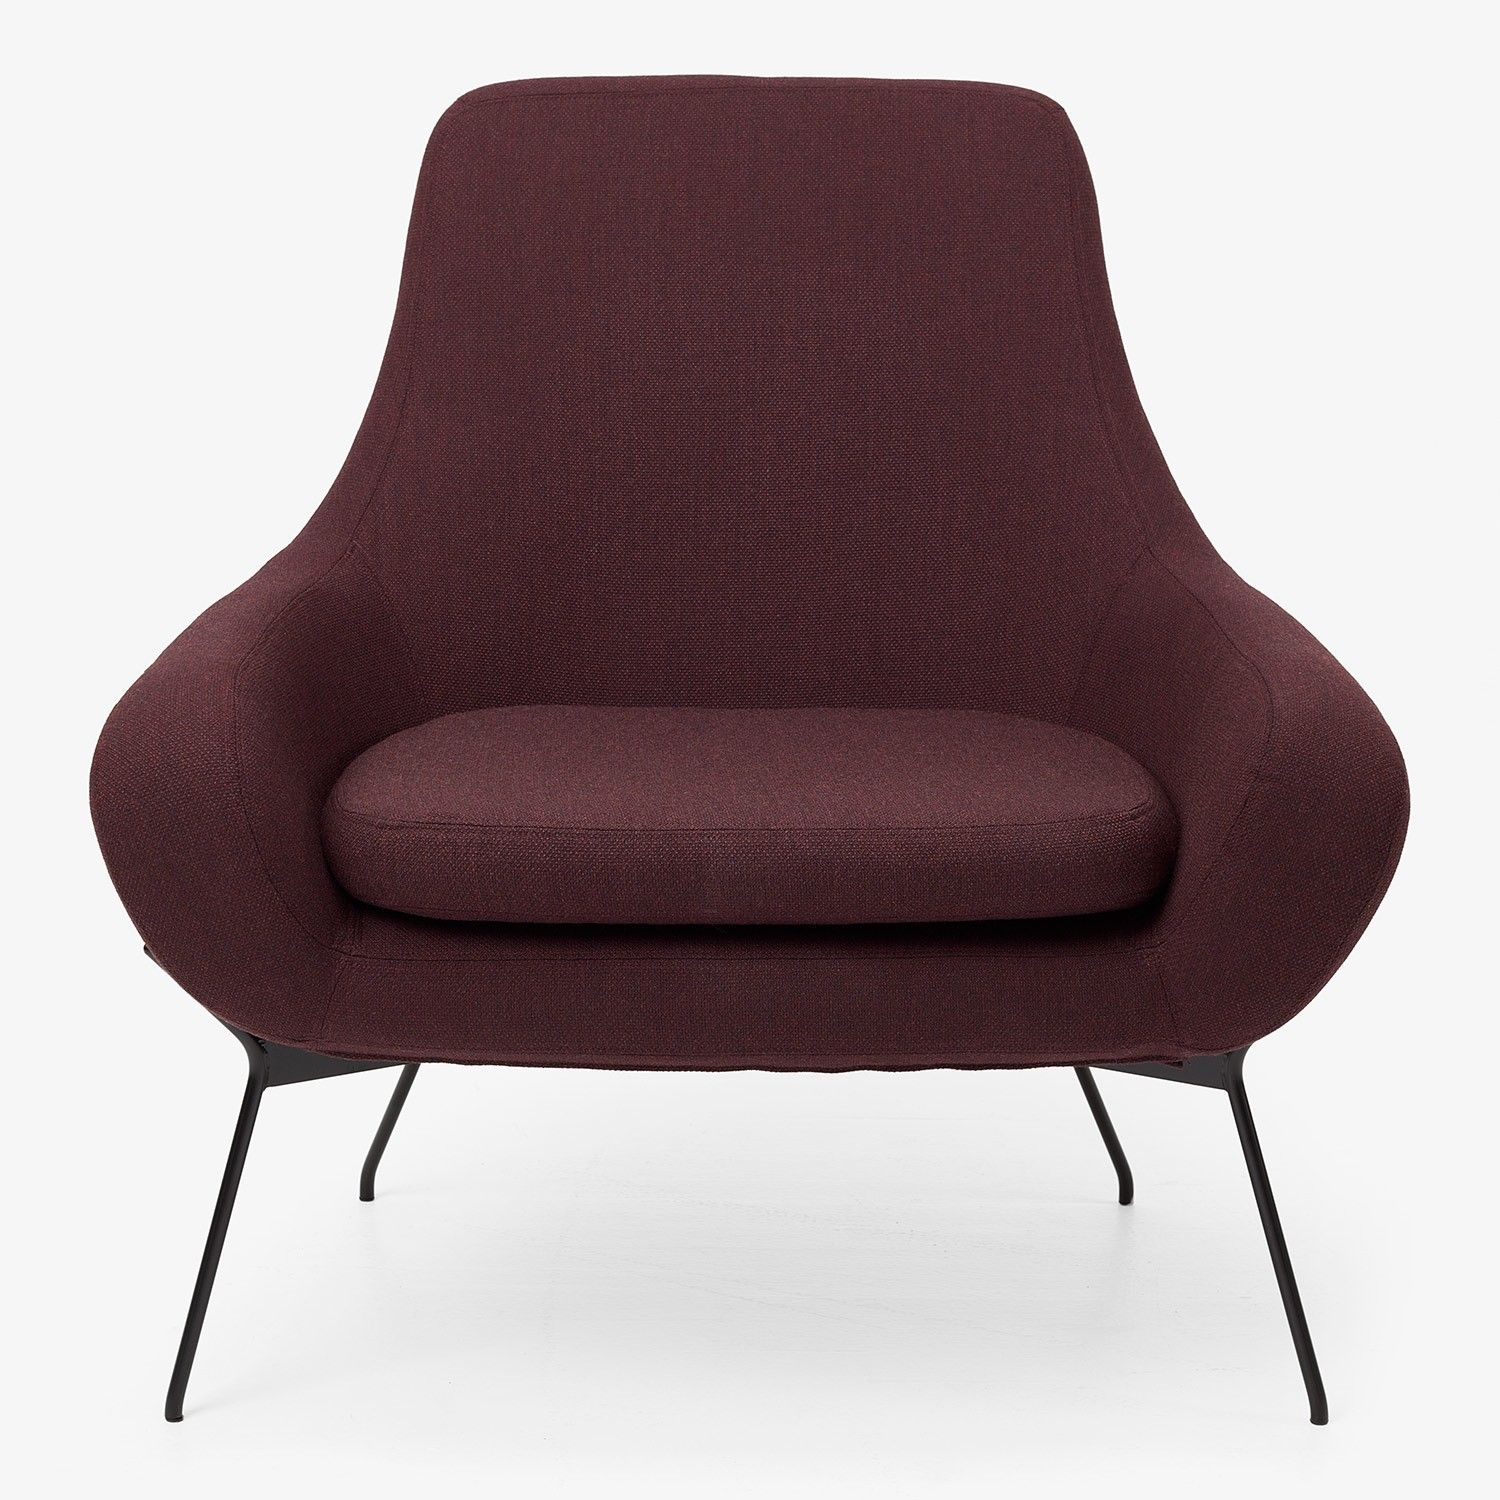 Stupendous Softline Noomi String Lounge Chair Wine Abc Carpet Home Pdpeps Interior Chair Design Pdpepsorg